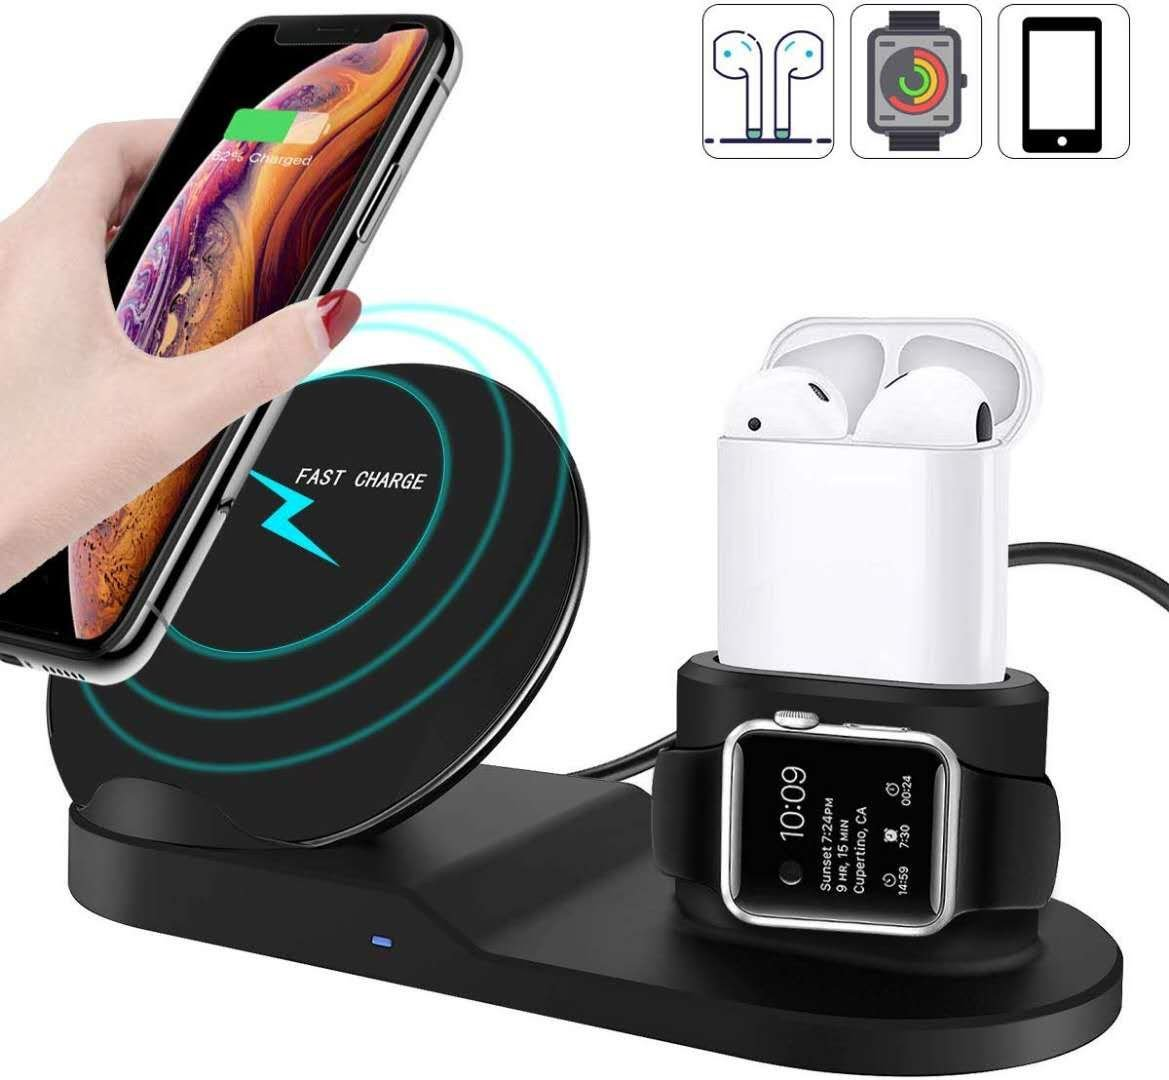 Black Wireless Charging Dock for Apple Watch, AirPods, iPhone XS Max, XR, X, 8/8 Plus